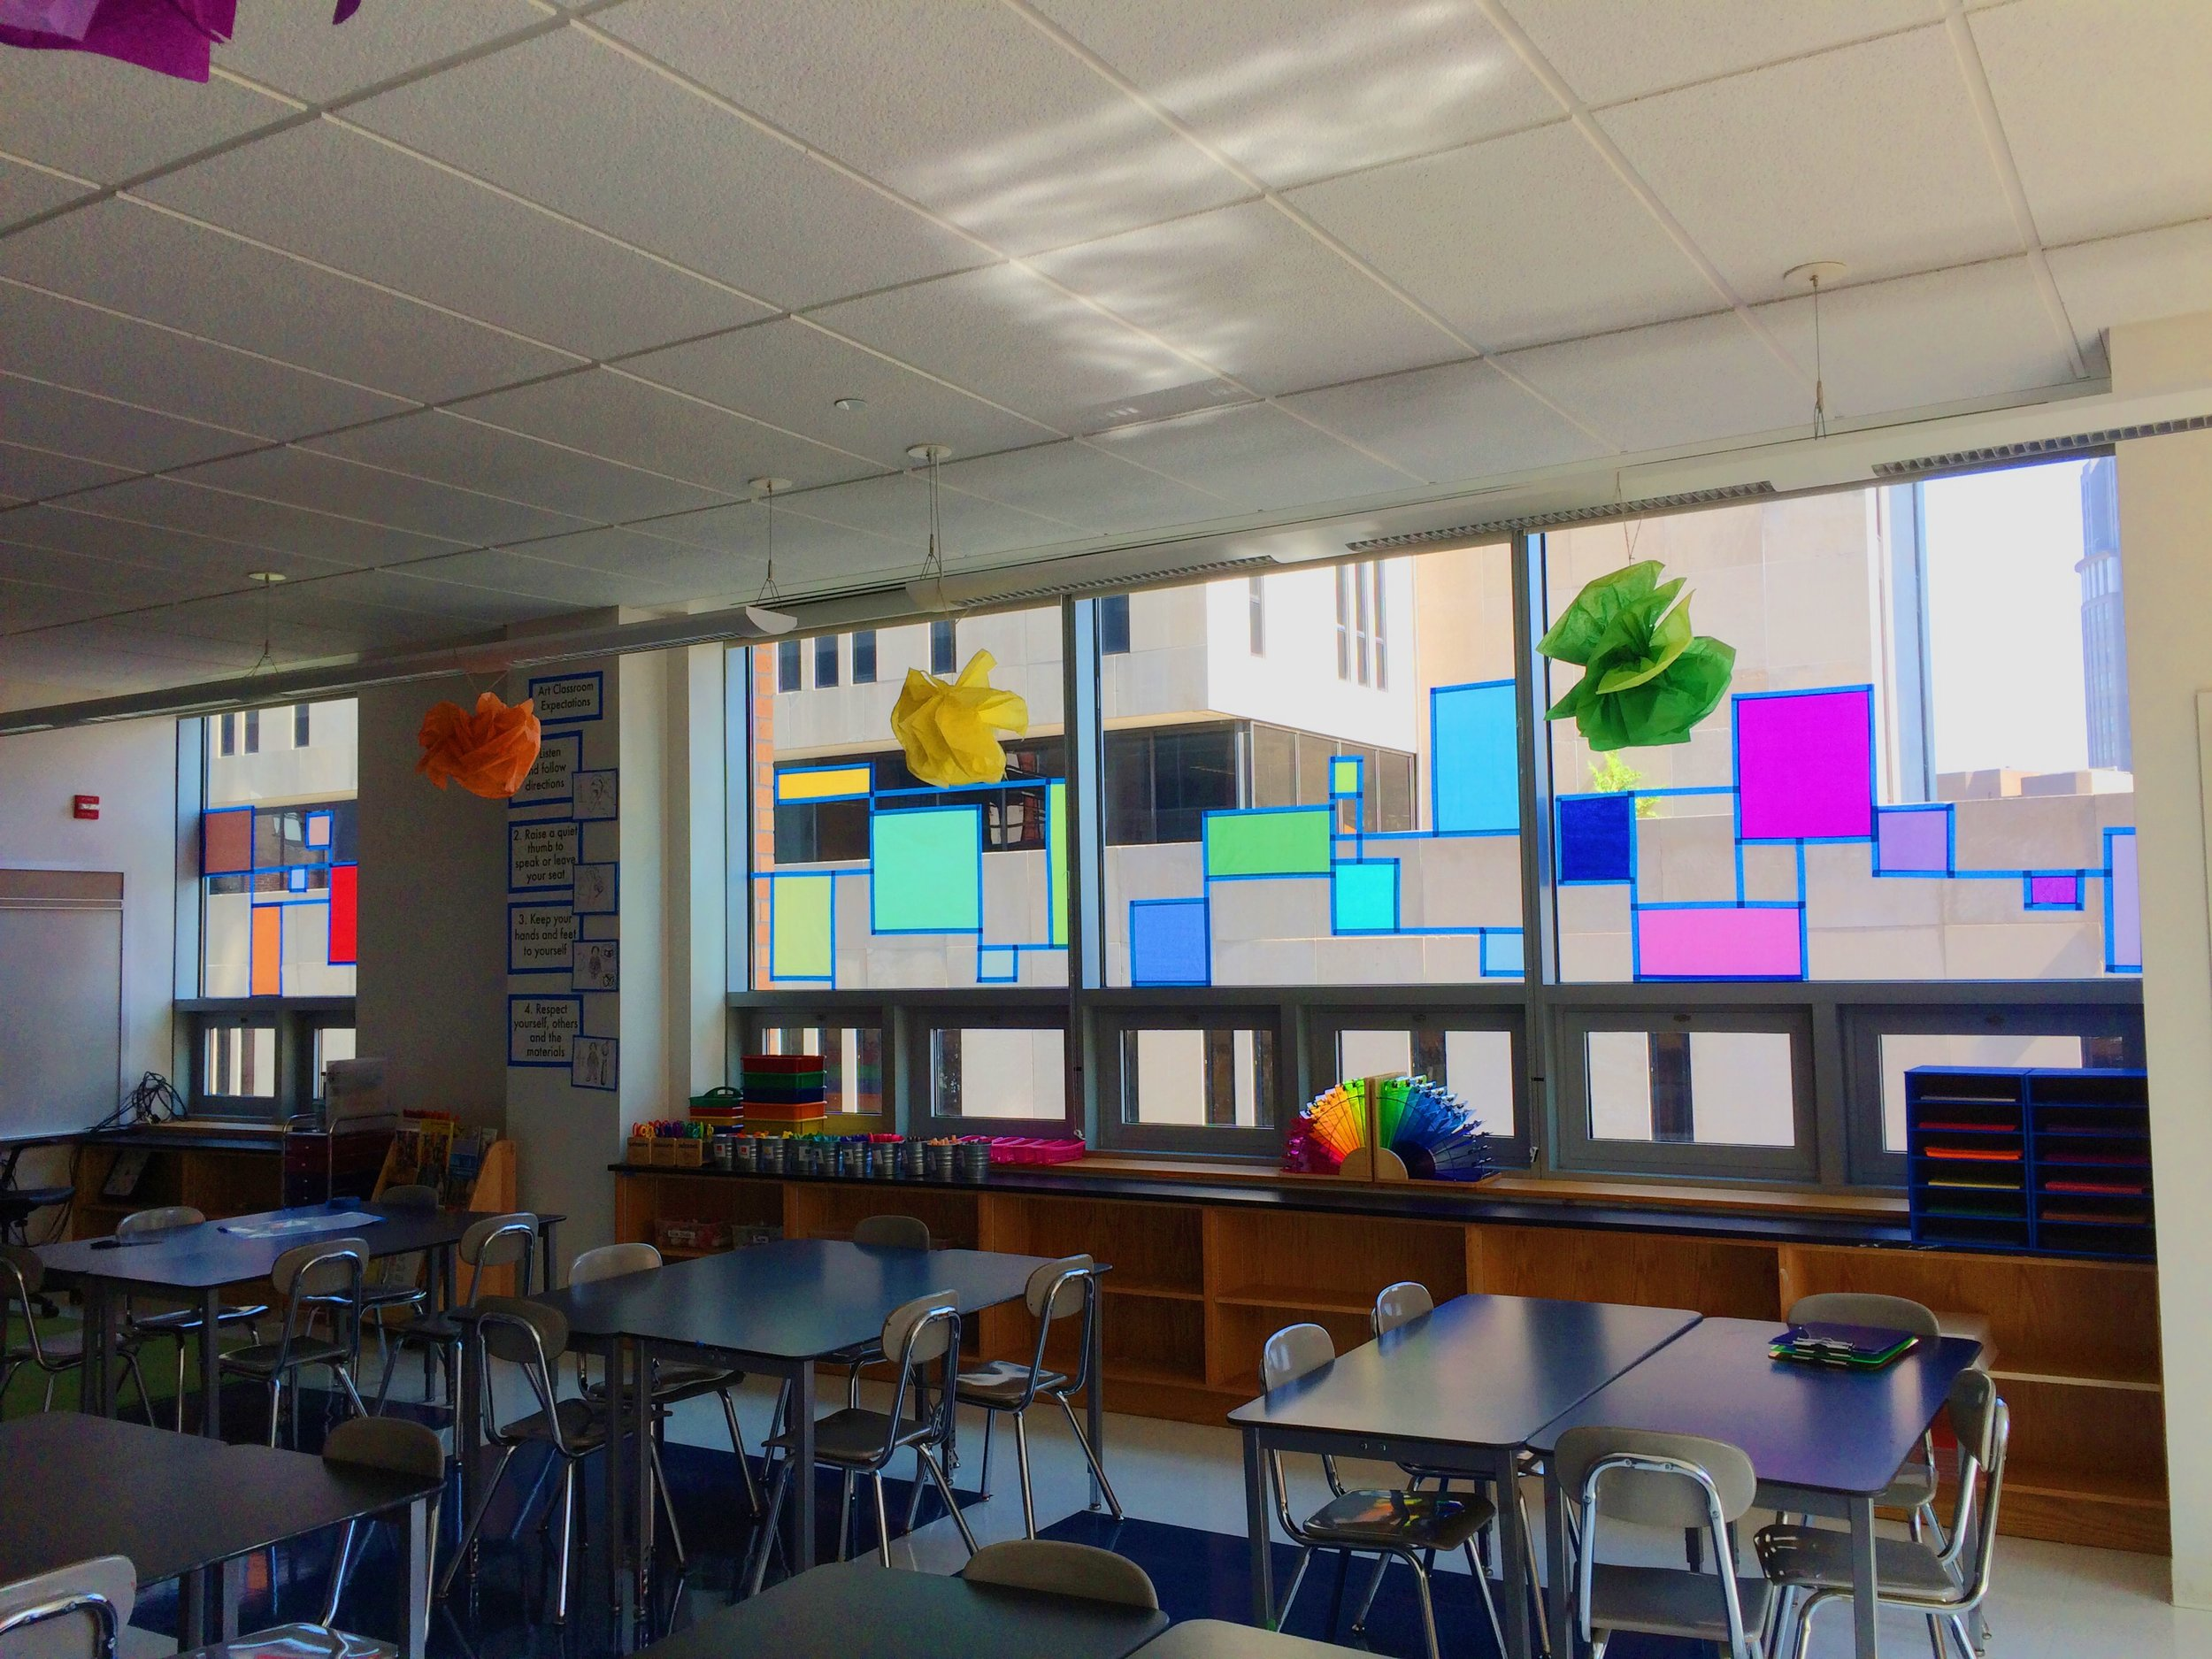 Our Mondrian windows (sometimes you just see something neat on the internet and you have to emulate it). ;)